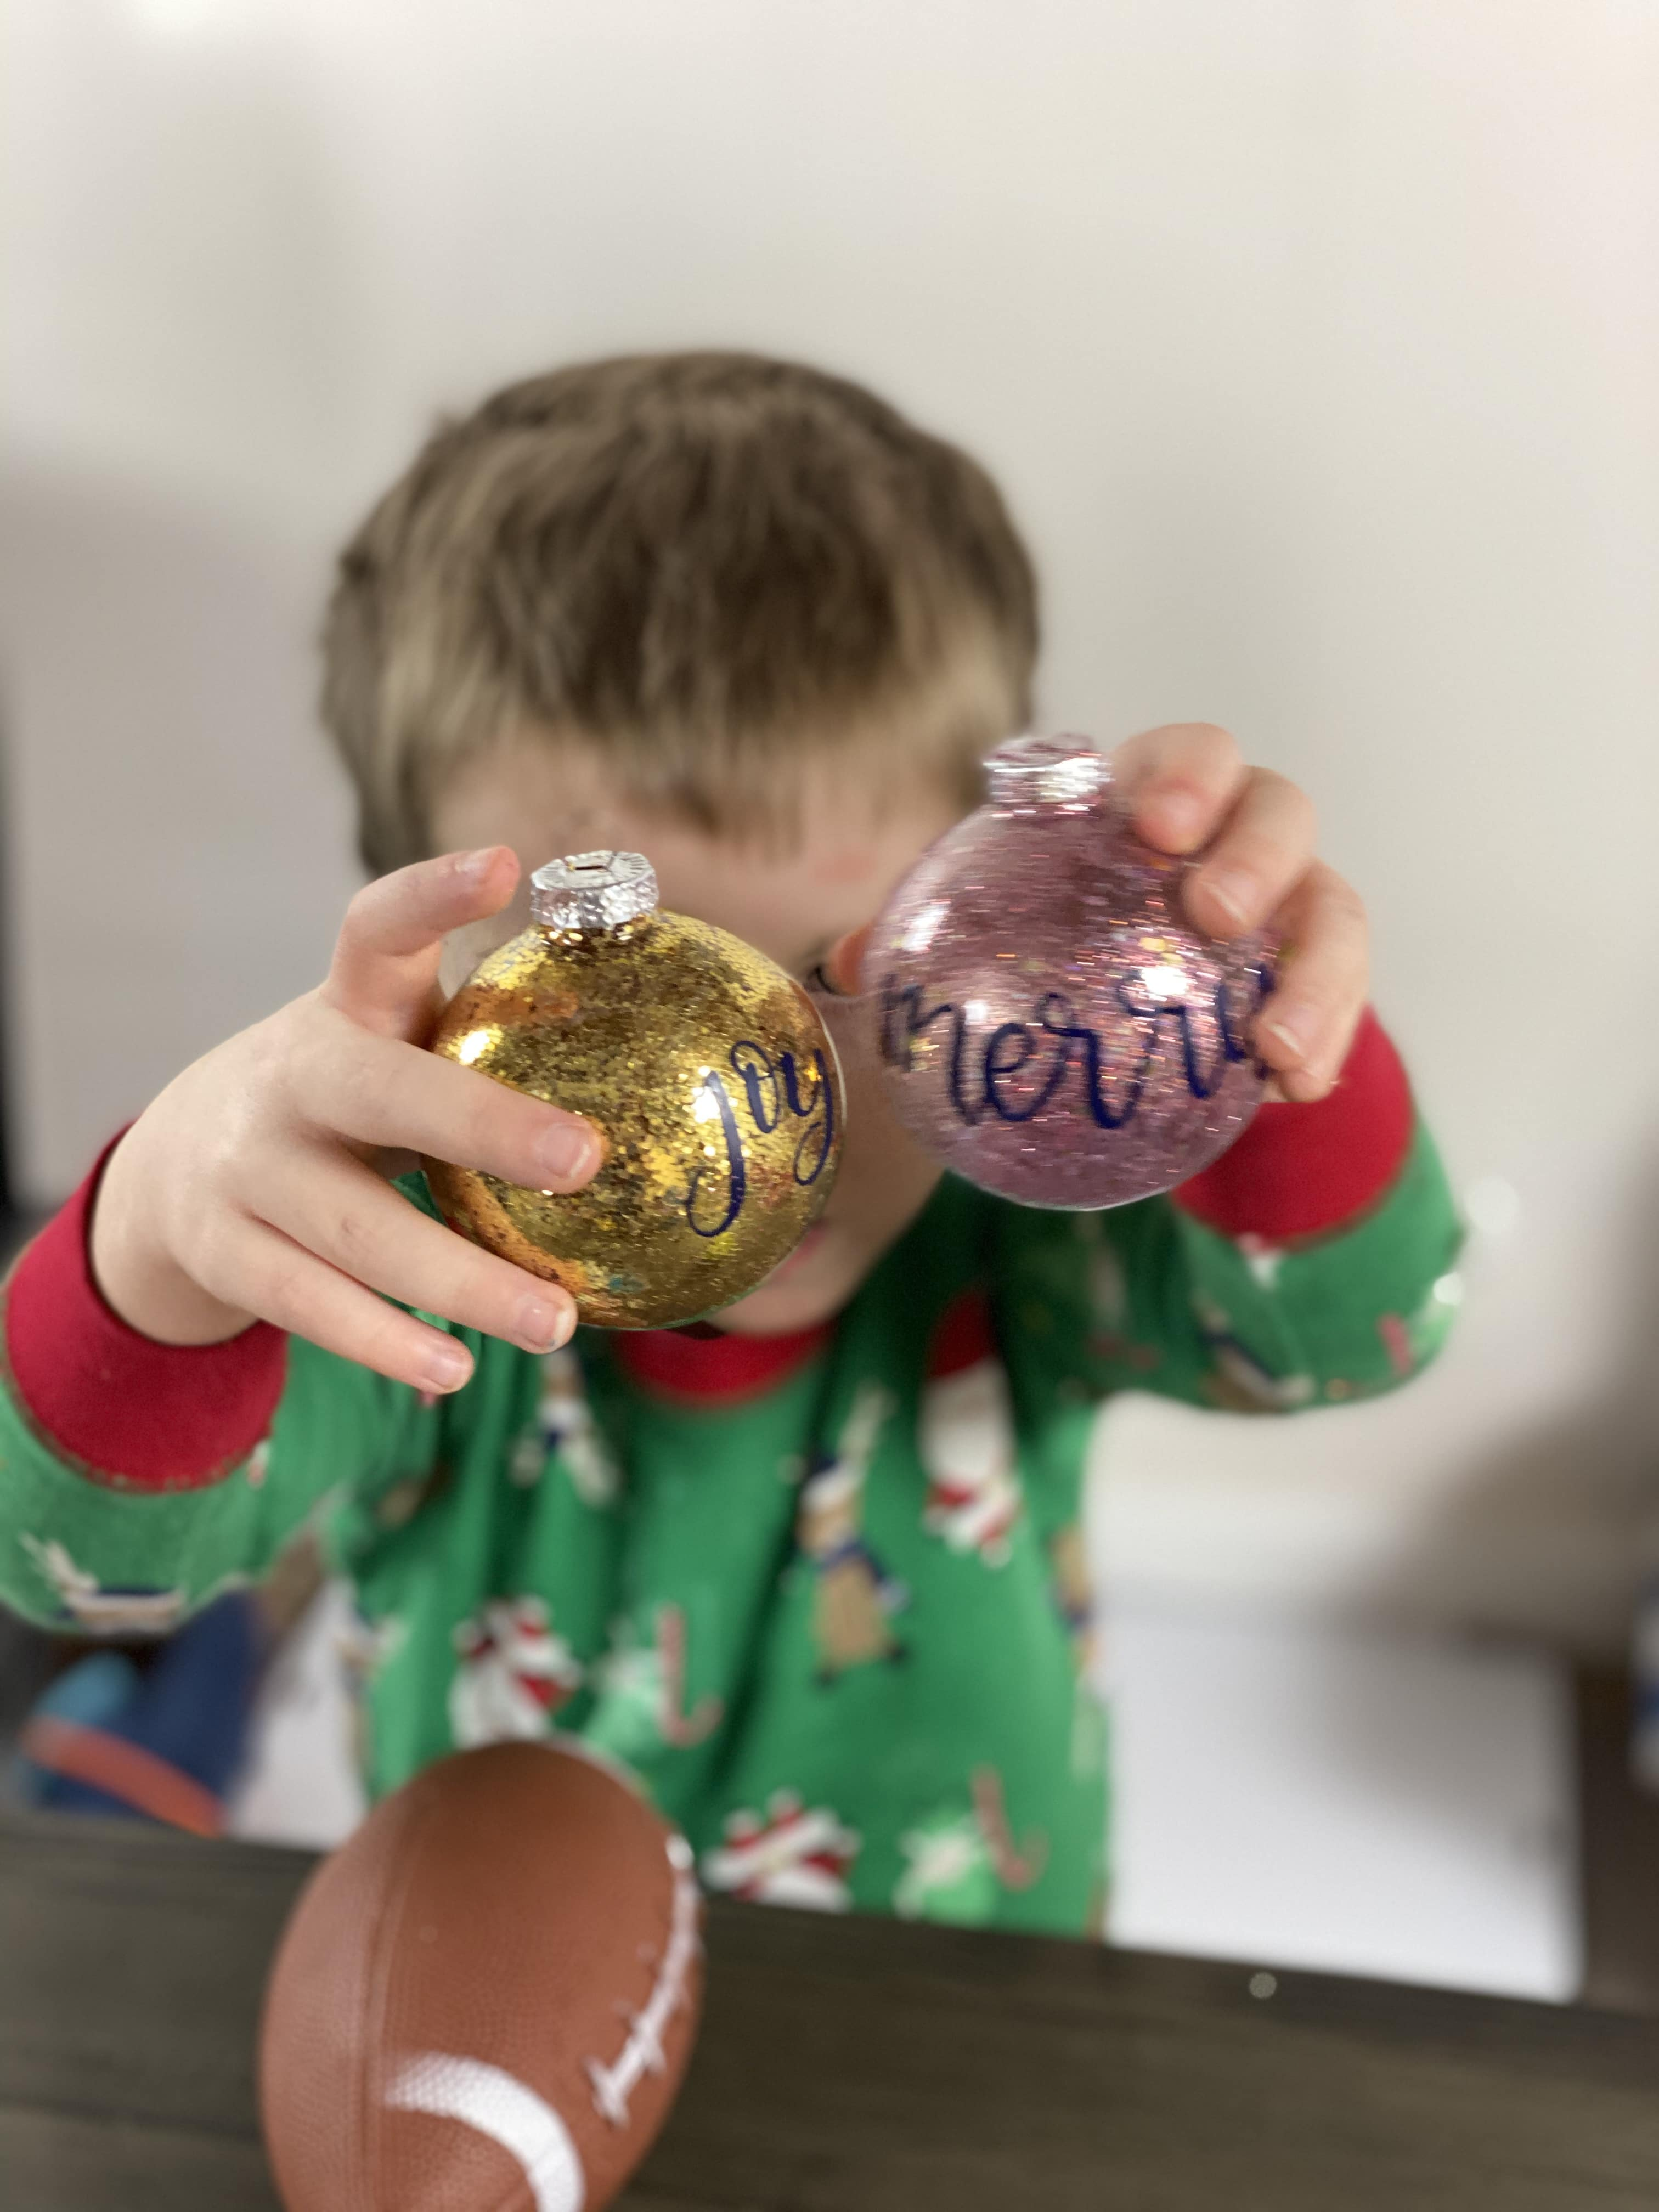 Christmas Glitter Ornament held by little boy